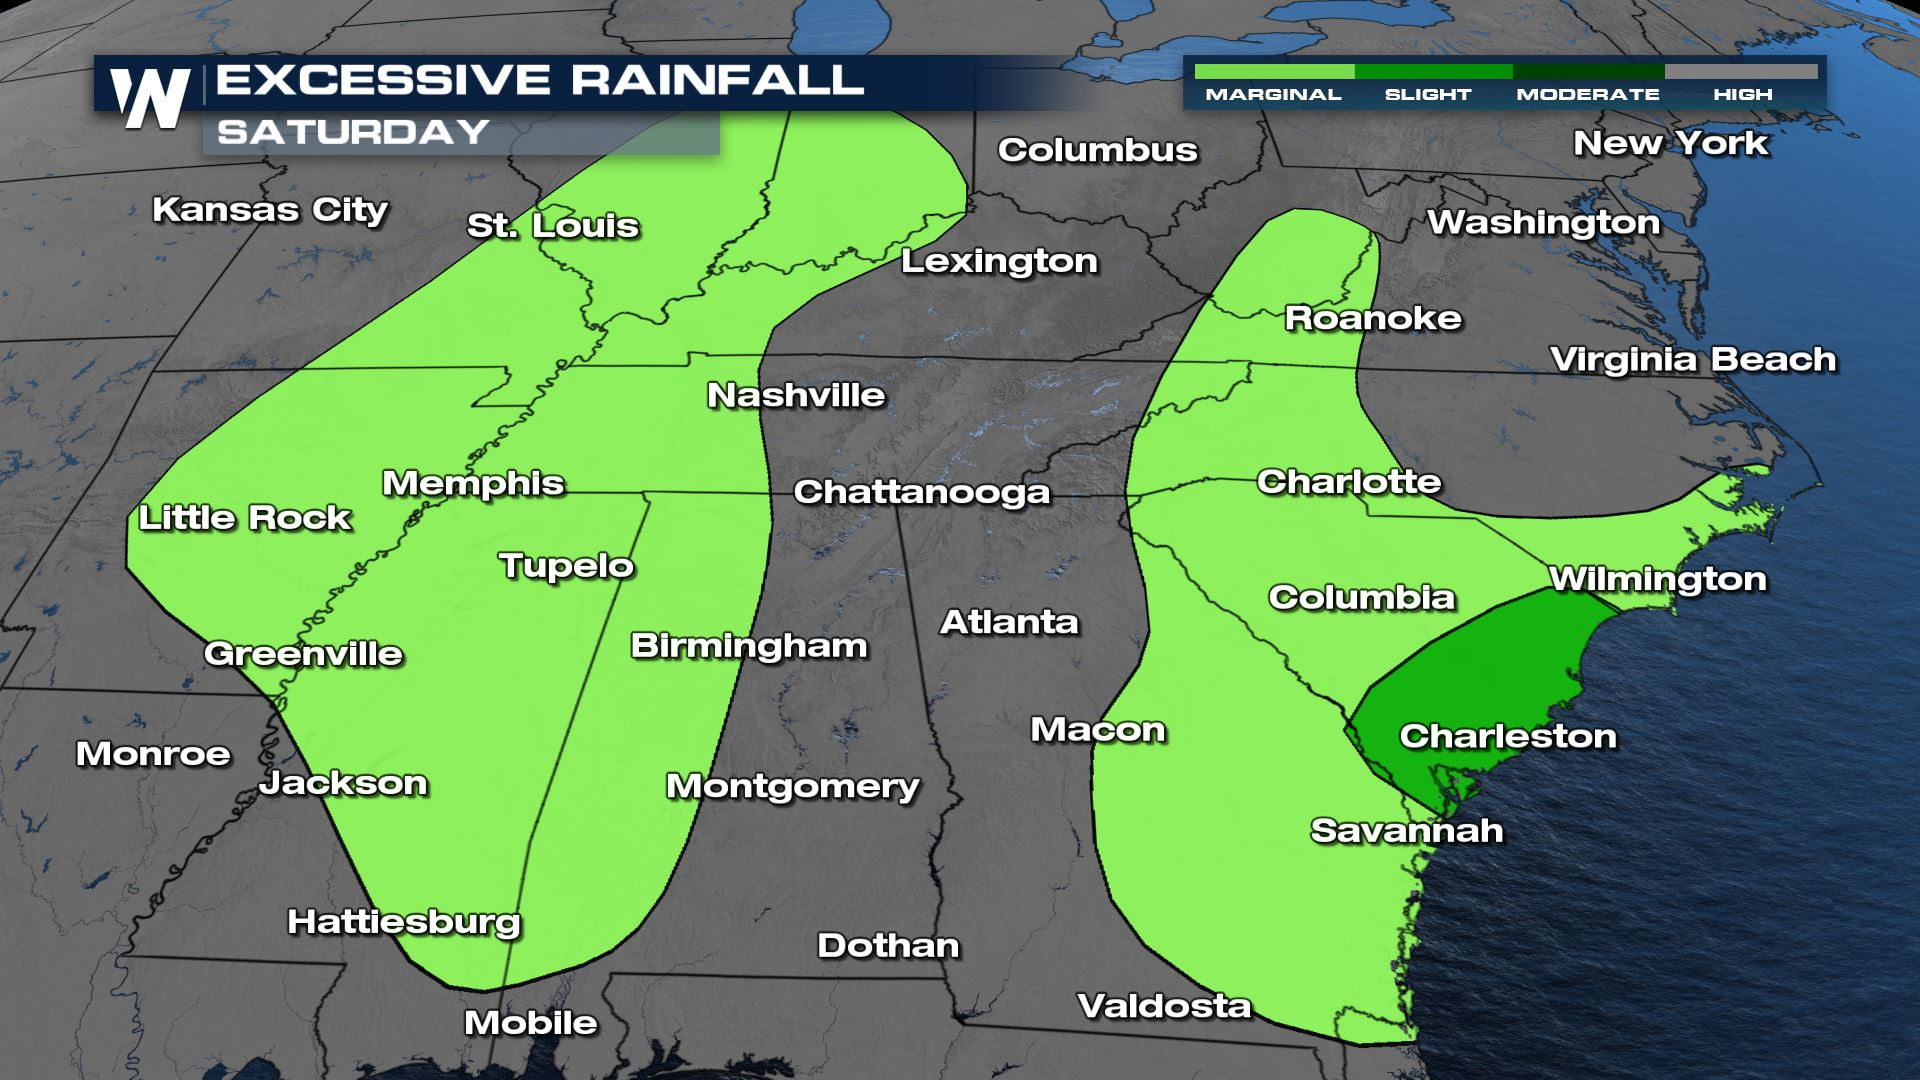 Isolated Flooding and Severe Storms This Weekend in the South